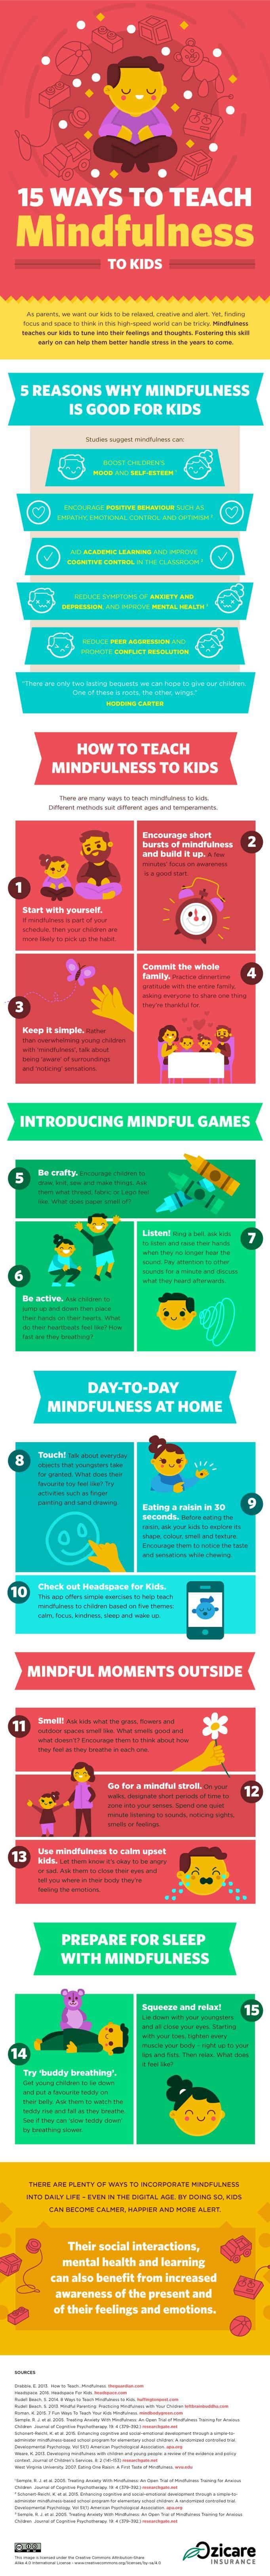 Infographic - Teaching mindfulness to kids